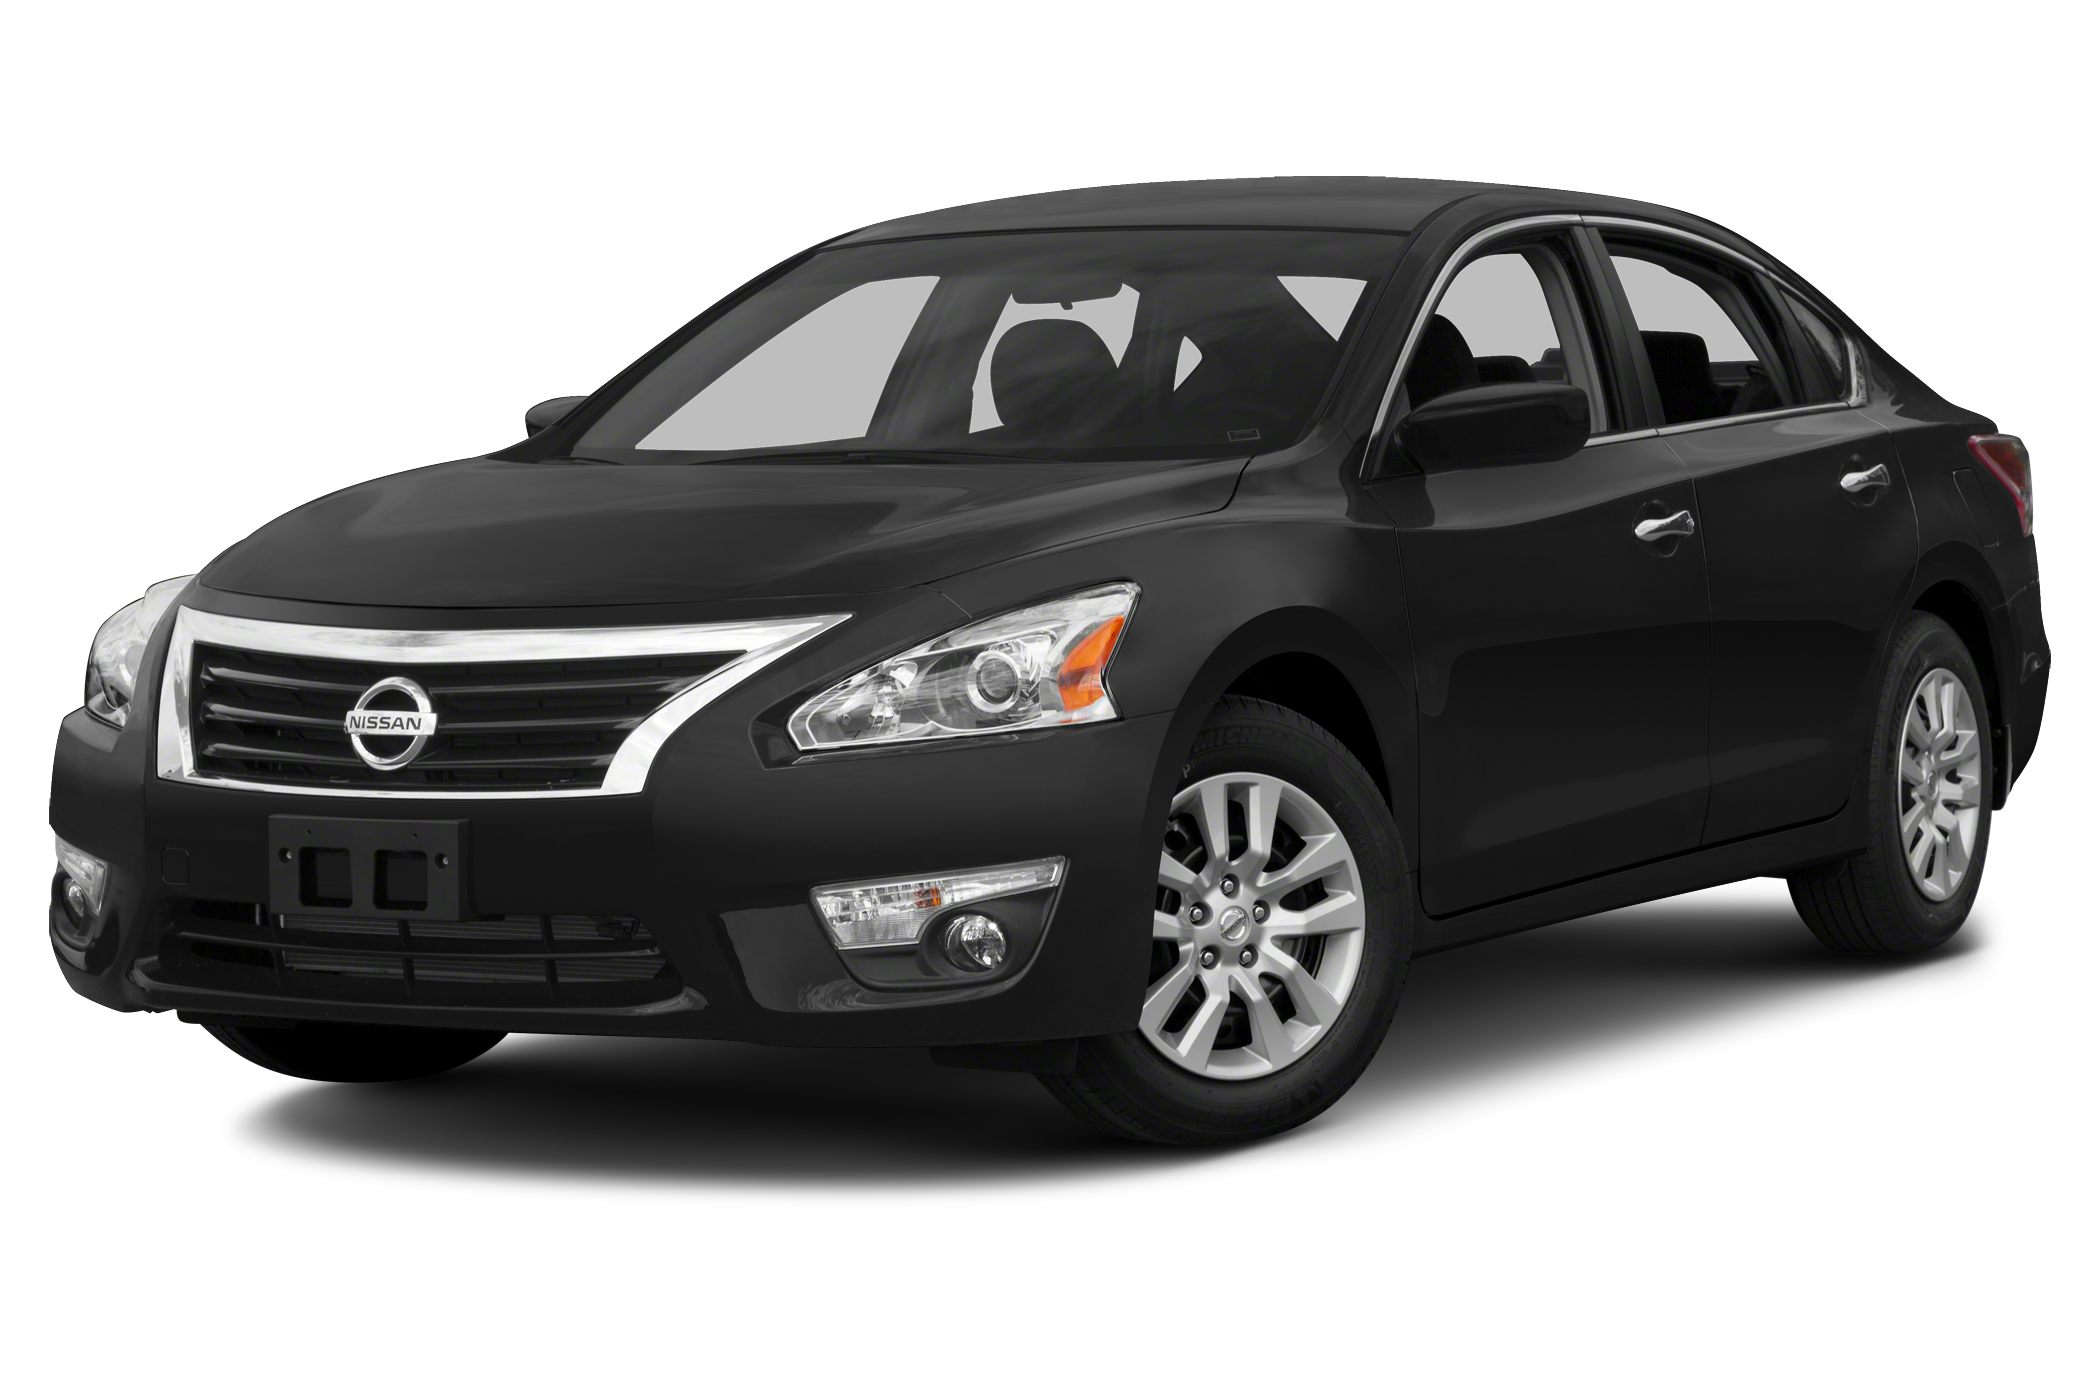 2015 Nissan Altima 2.5 S Sedan for sale in Tulsa for $22,640 with 6 miles.